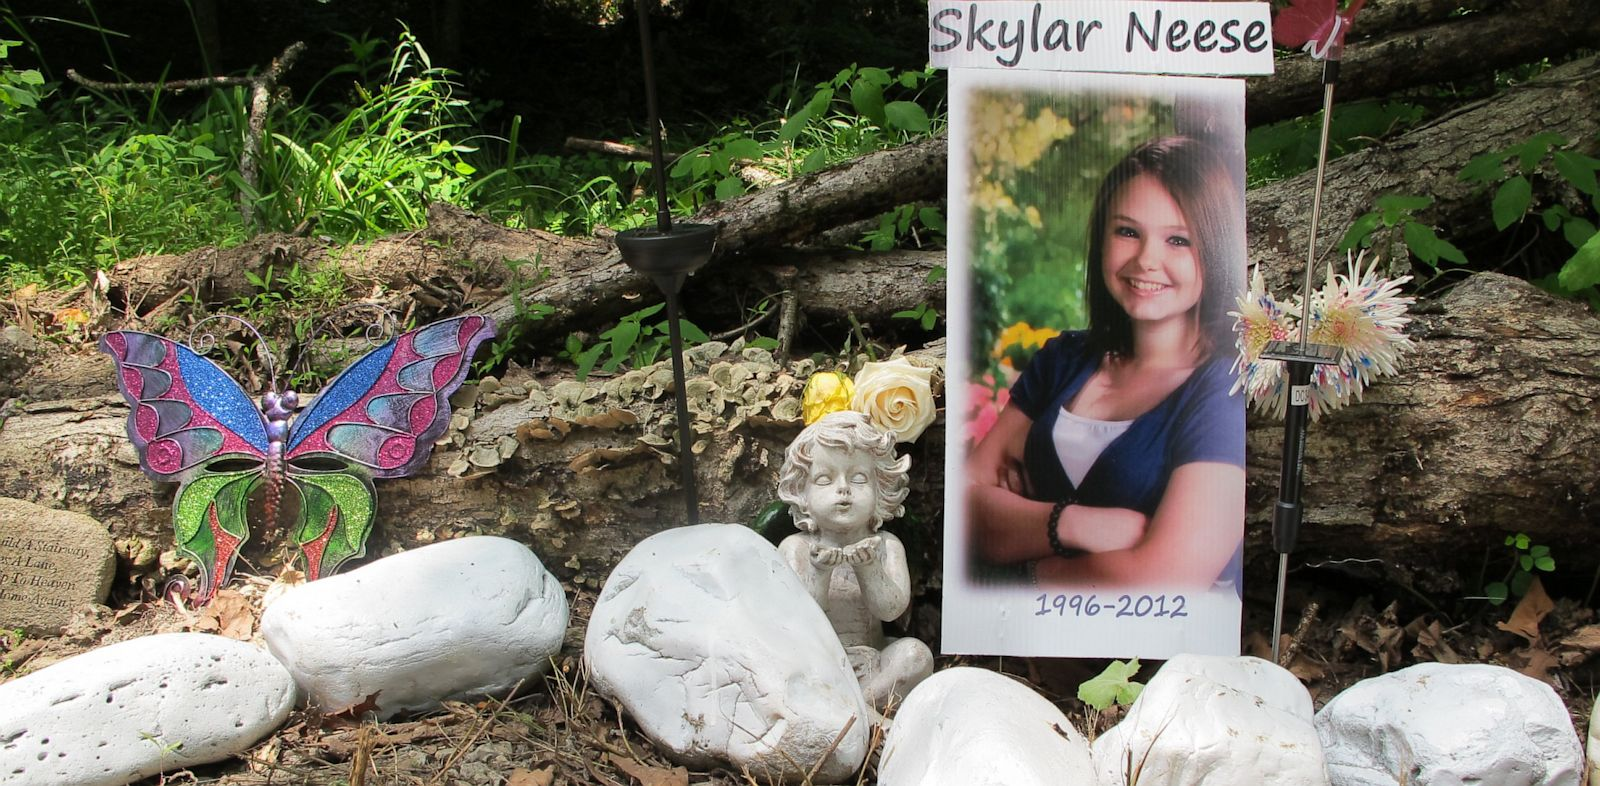 PHOTO: Skylar Neese Memorial